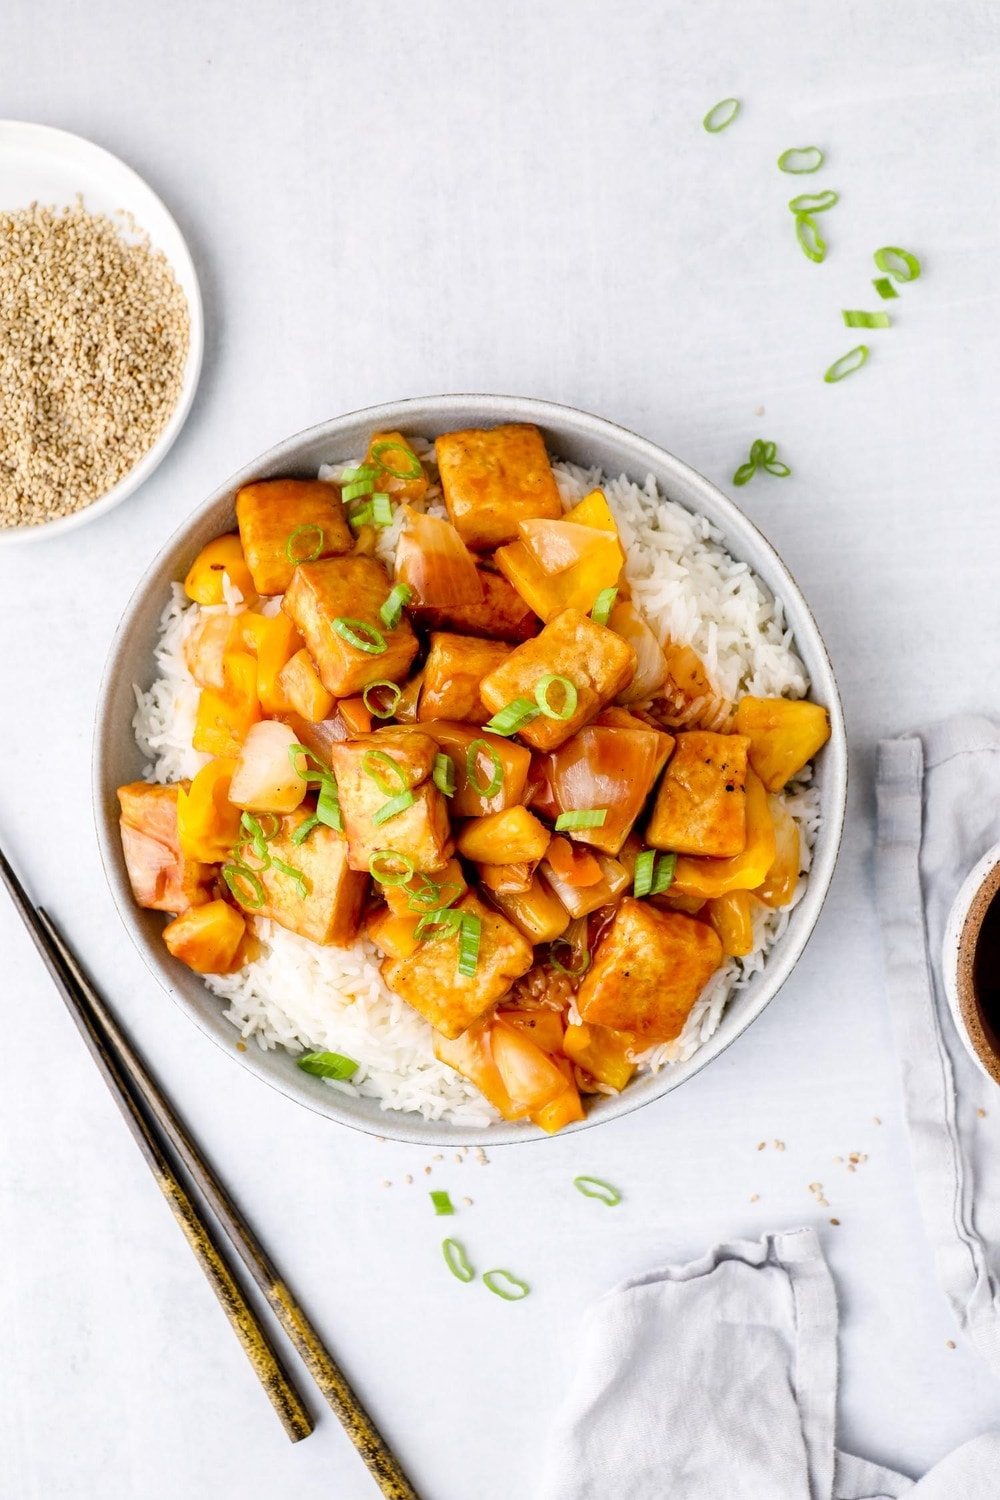 Healthy Sweet and Sour Sauce cooked with tofu, pineapple, and peppers.